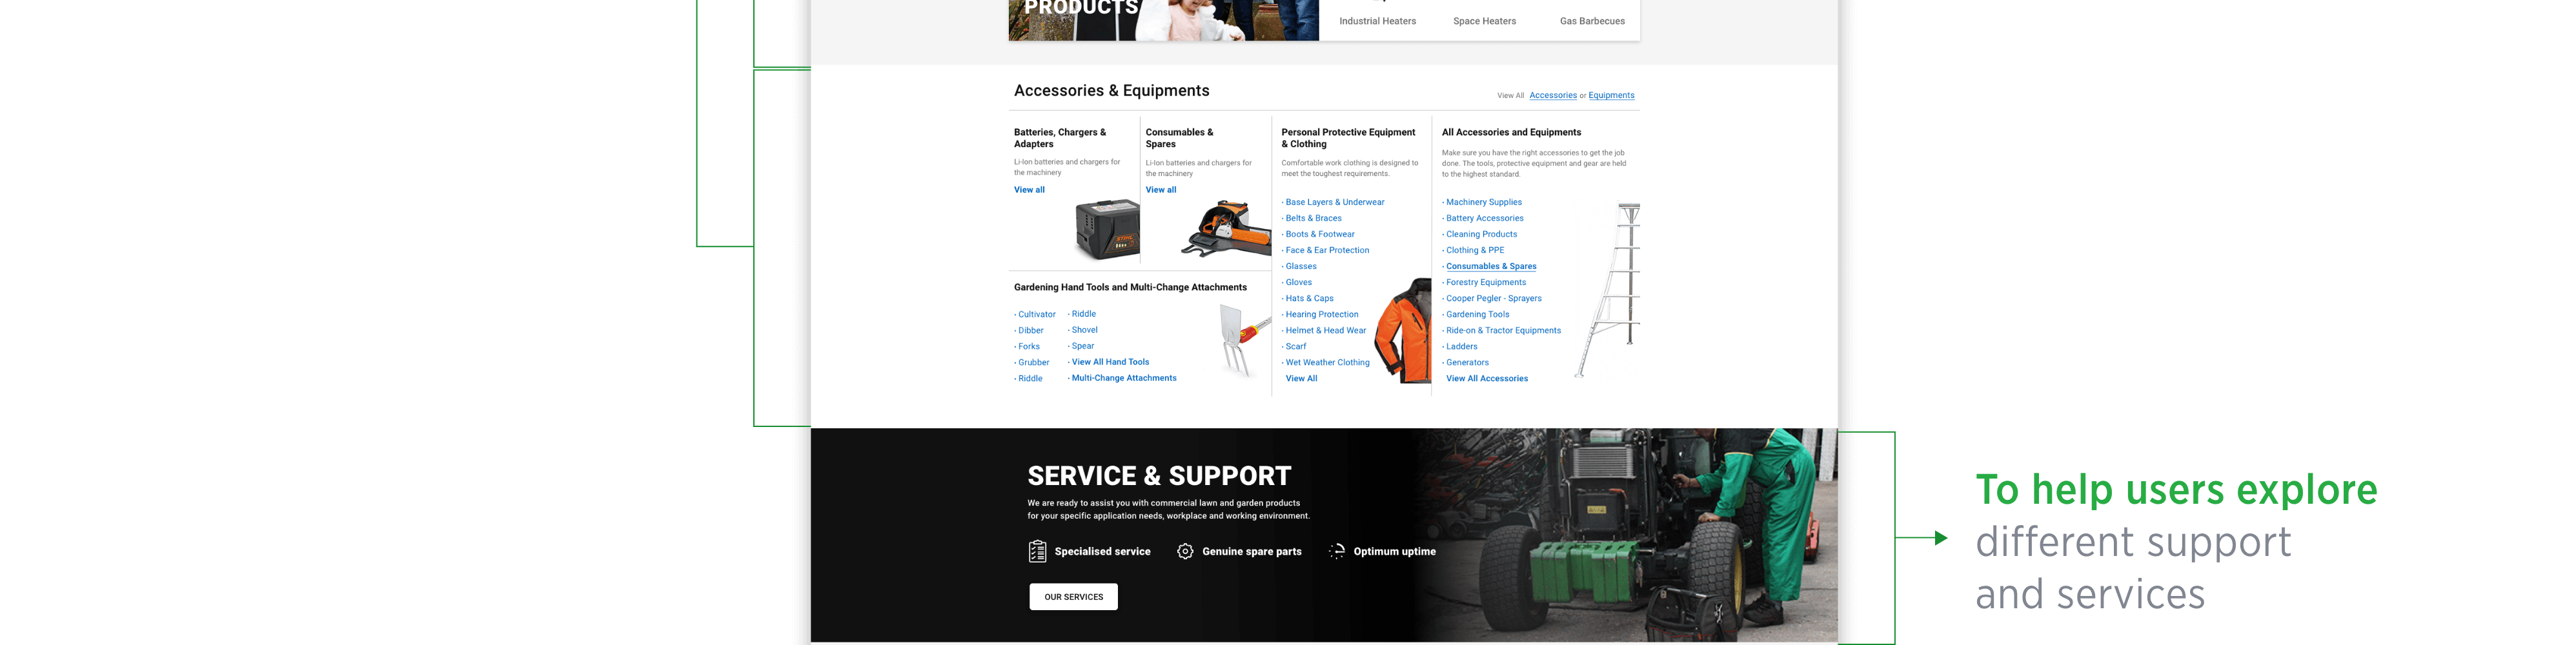 Garden Accessories and Equipment, and Support Service Sections of APS website